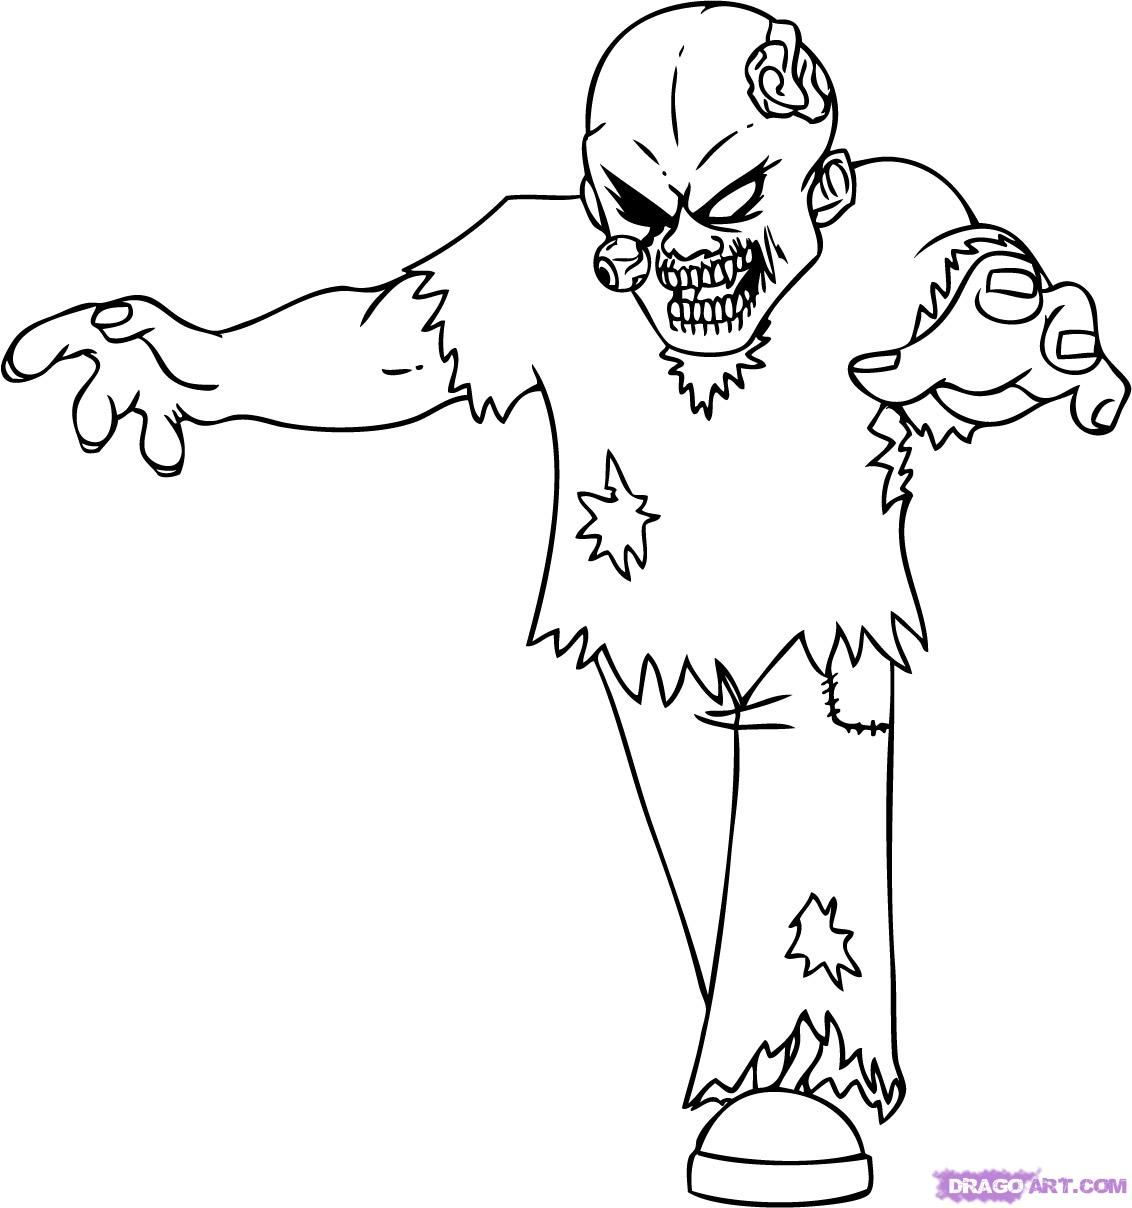 zombies coloring pages | Experienced Zombie Image #3 | Experienced ...